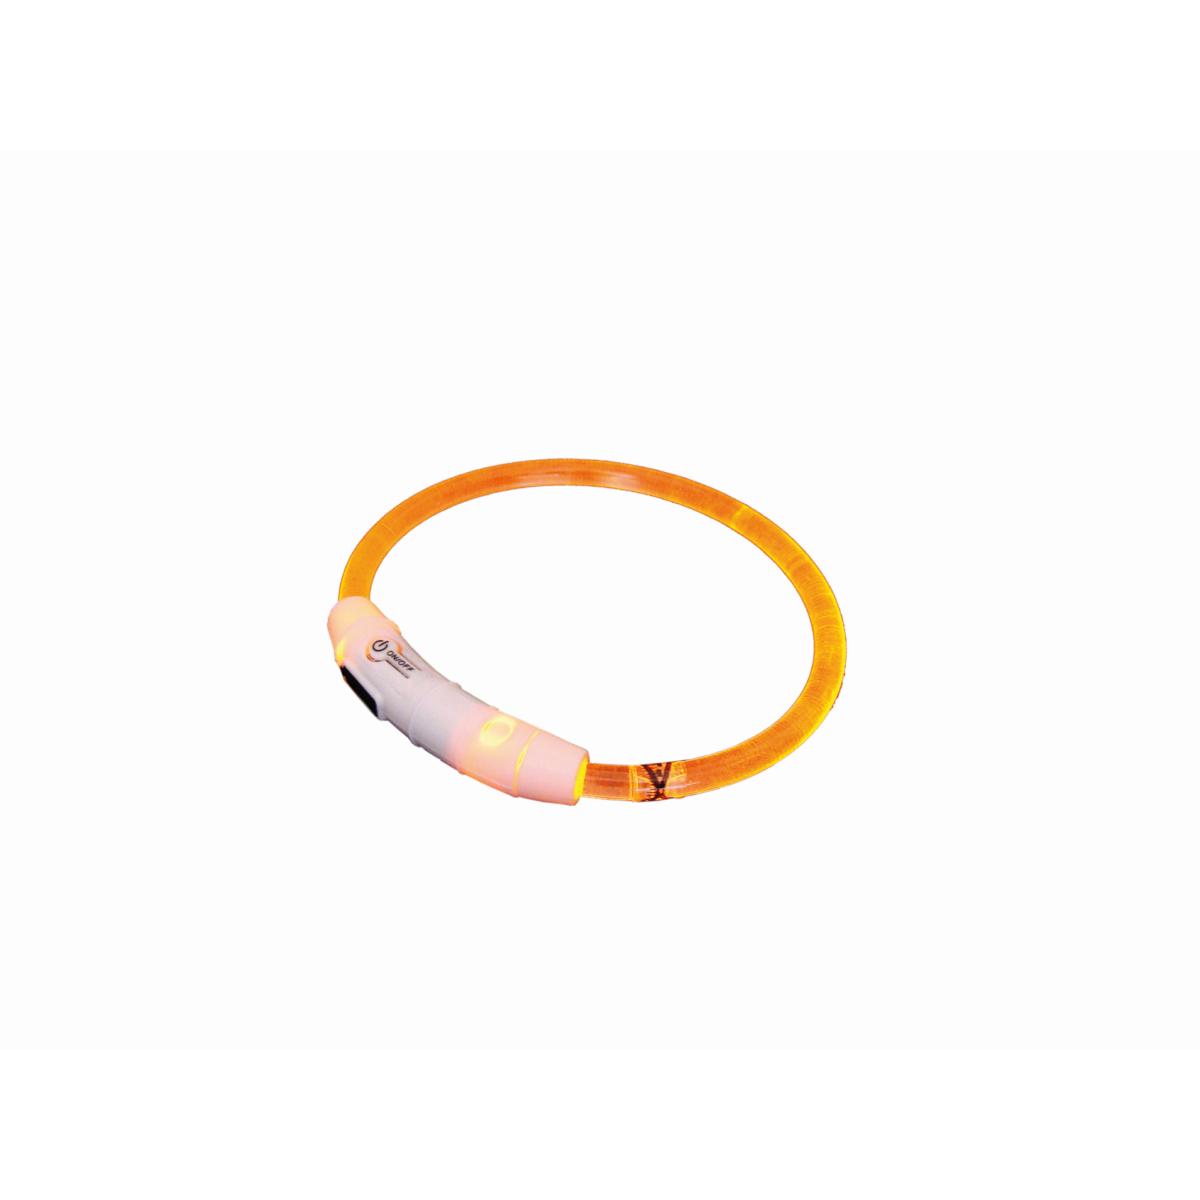 NB LICHTBAND VISIBLE S 00001